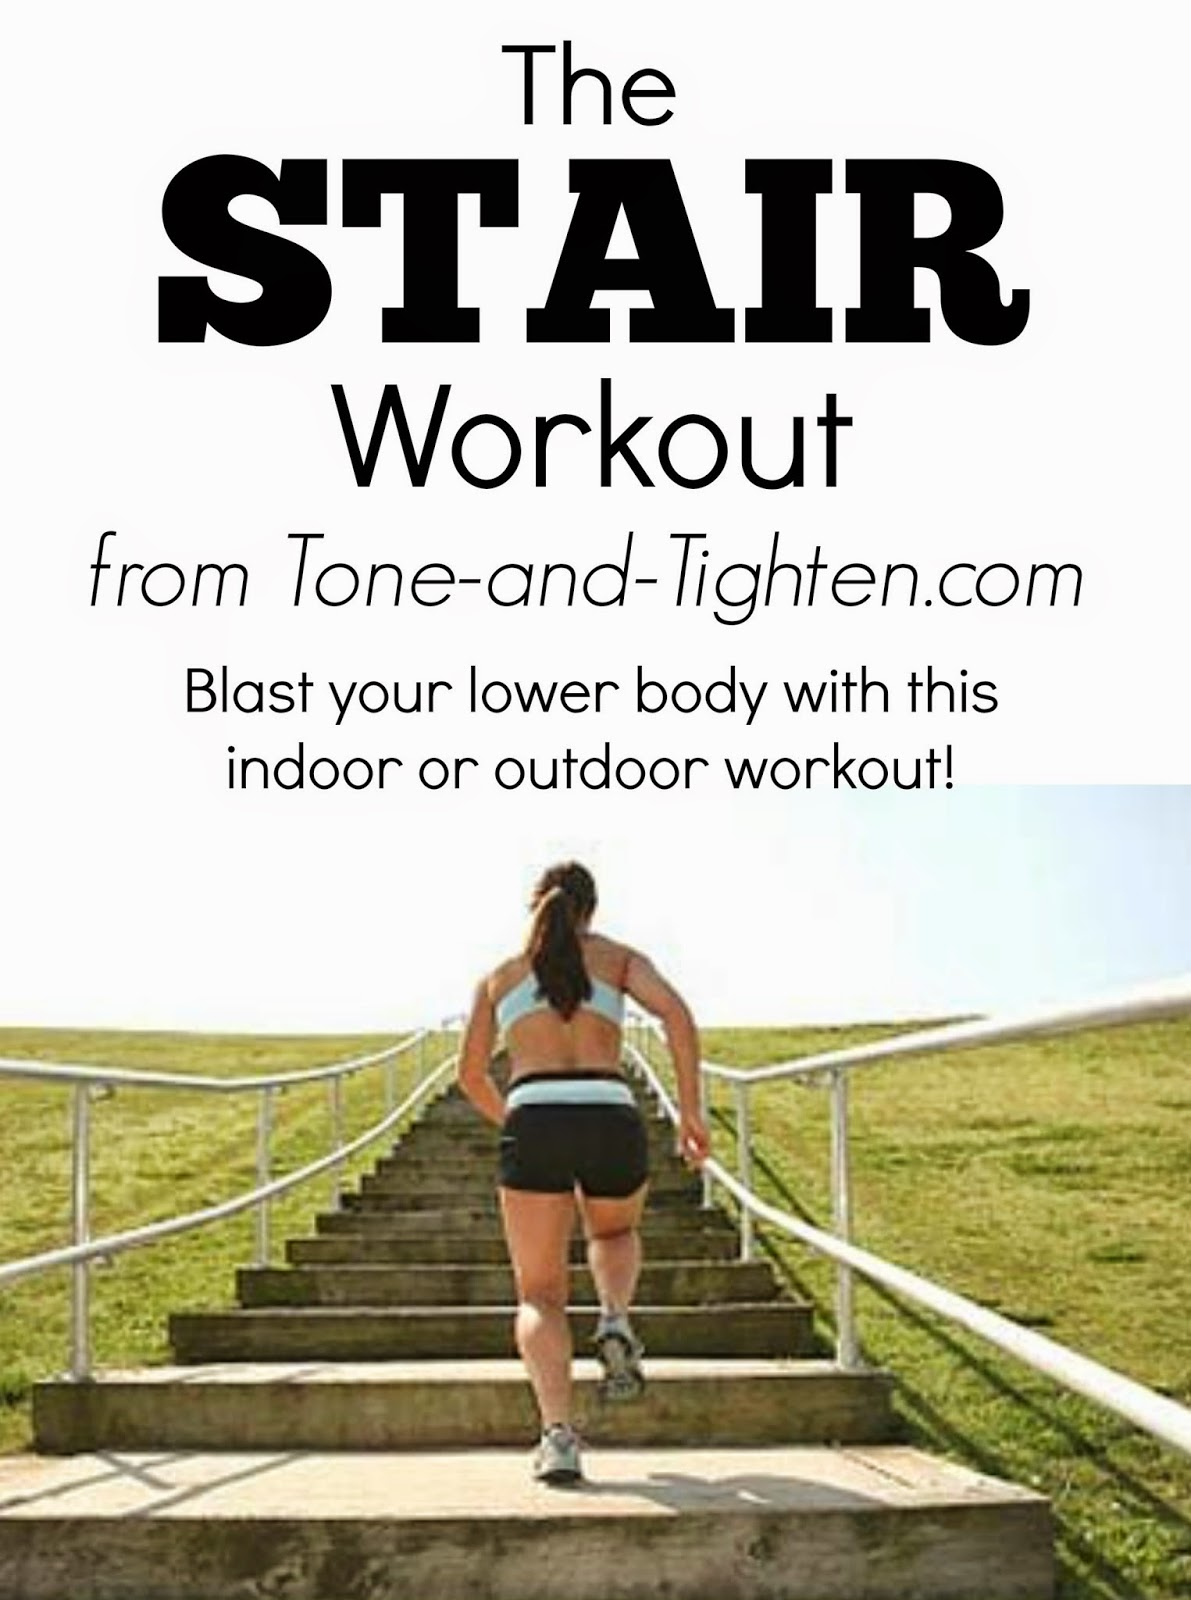 The Stair Workout Make Those Legs Burn